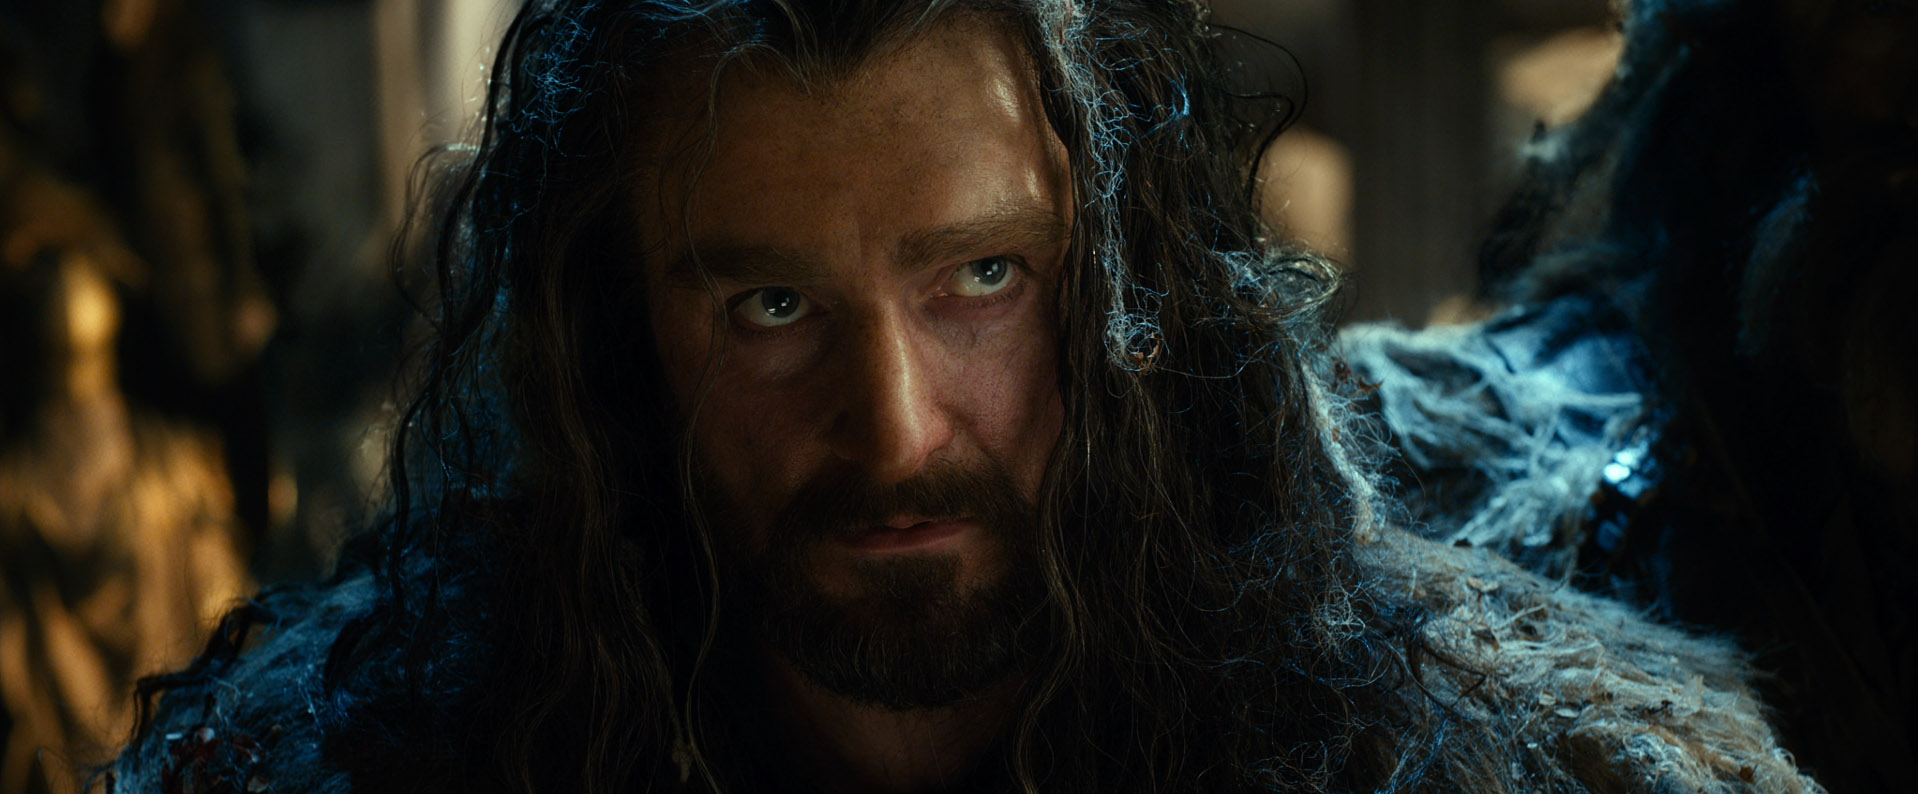 The Hobbit Trailer Analysis - The Battle of the Five Armies | Hobbit Movie News and Rumors | TheOneRing.net™